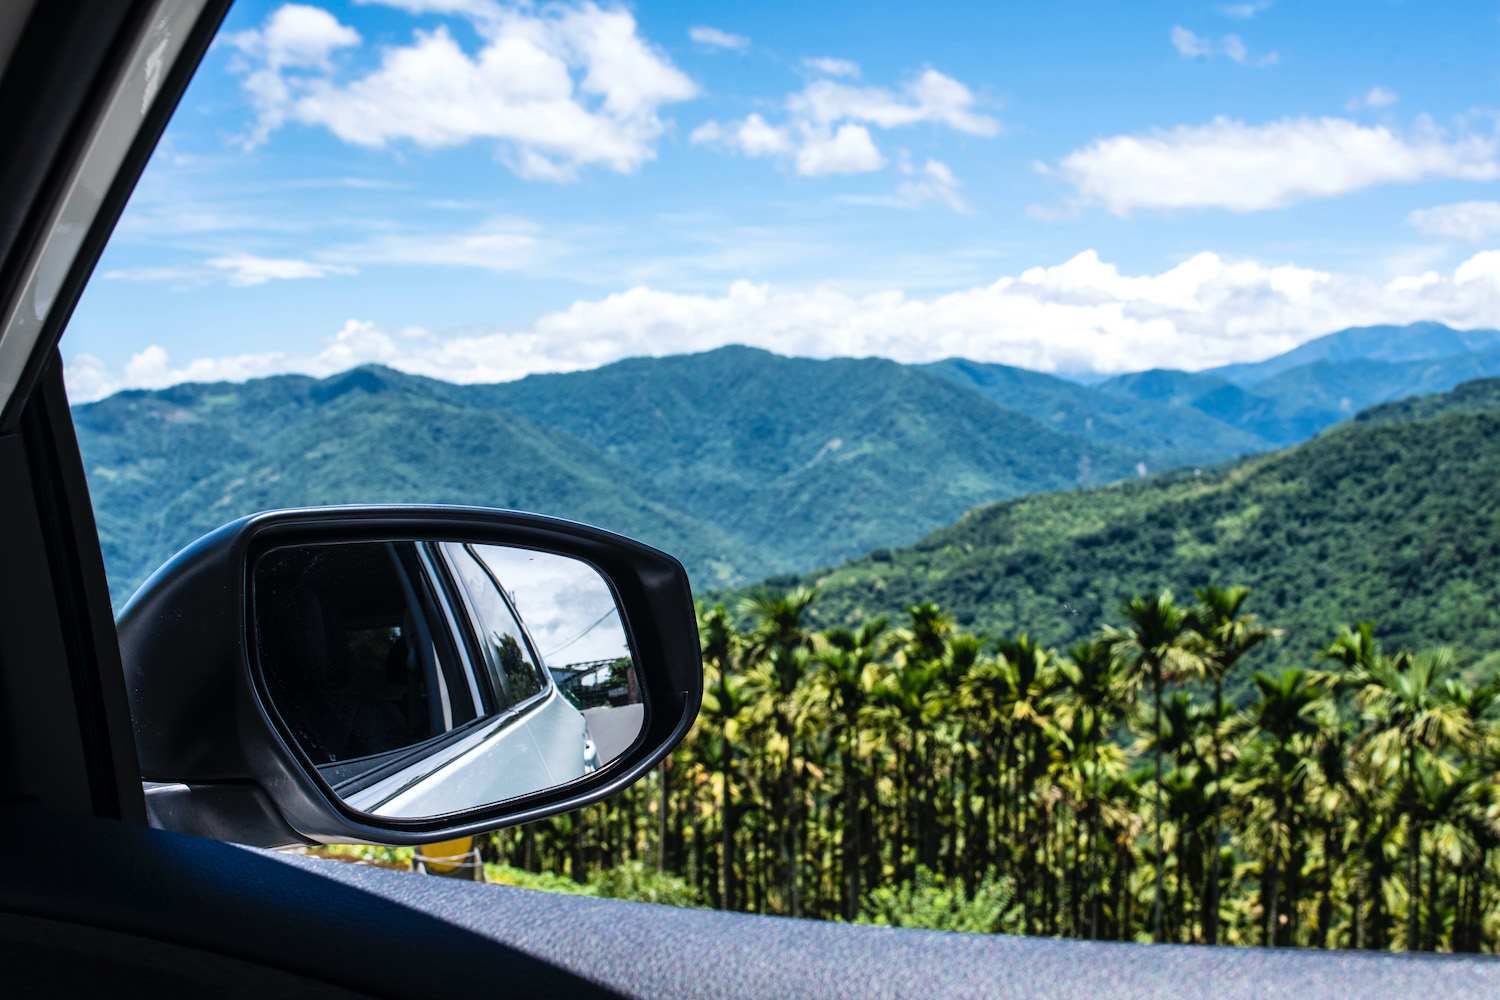 What You Need to Know About Renting a Car in Taiwan